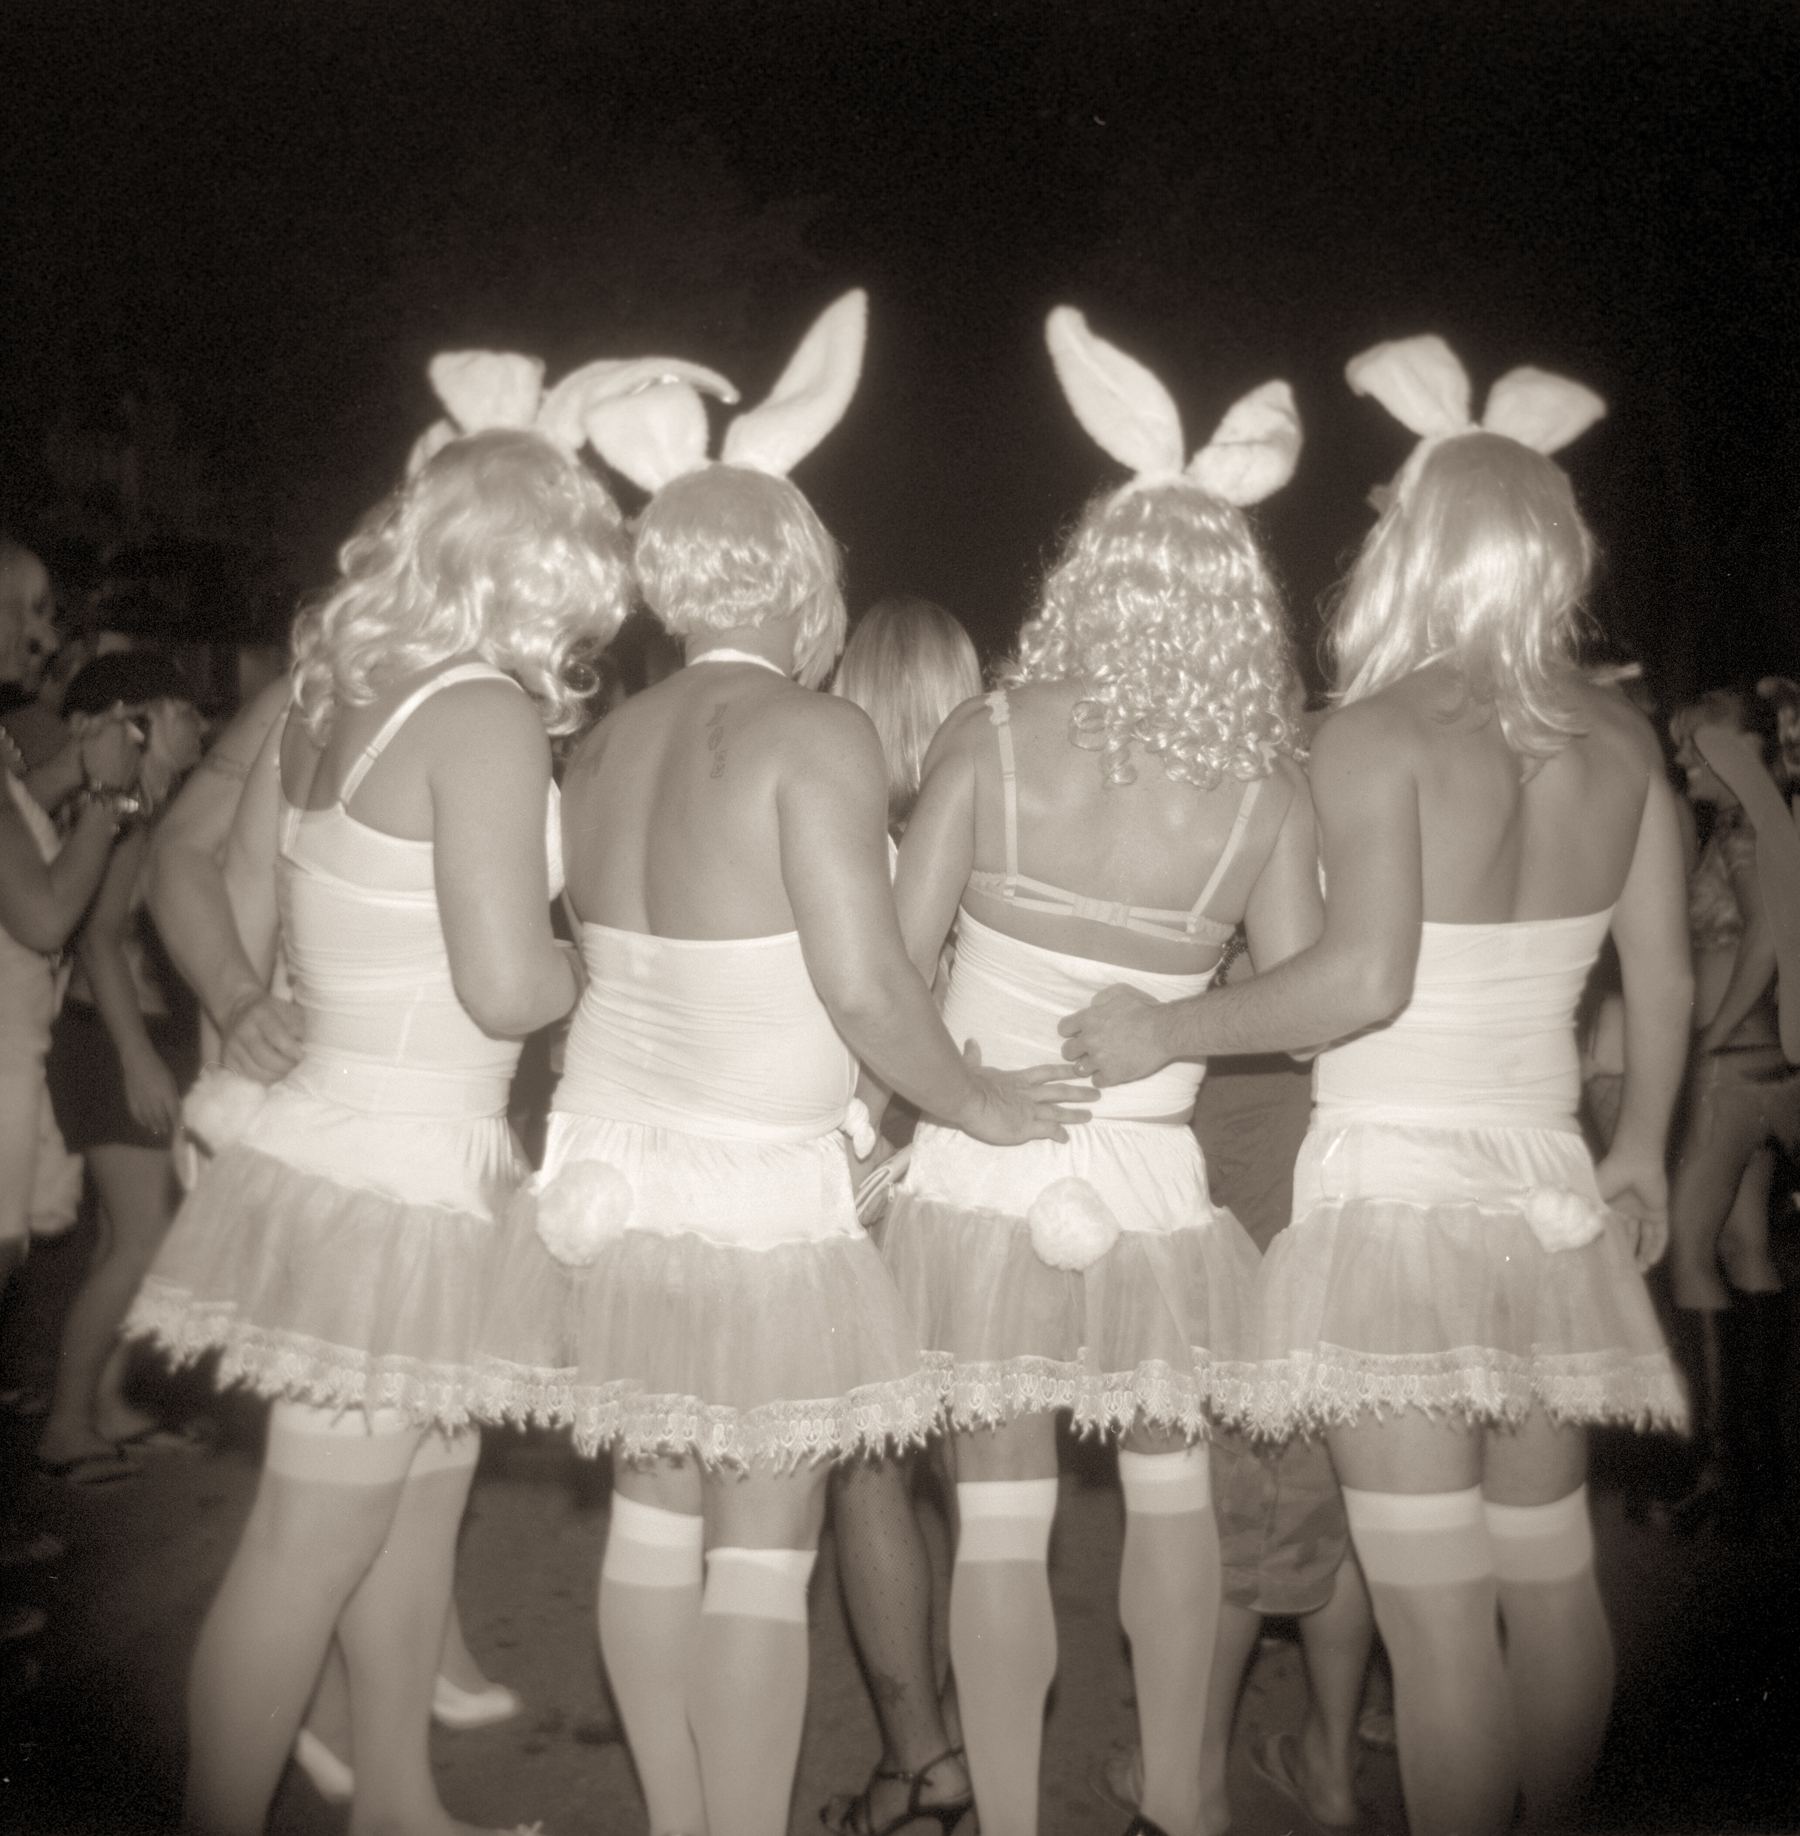 Copy of GORDON STETTINIUS, BUNNIES, KEY WEST, 2009